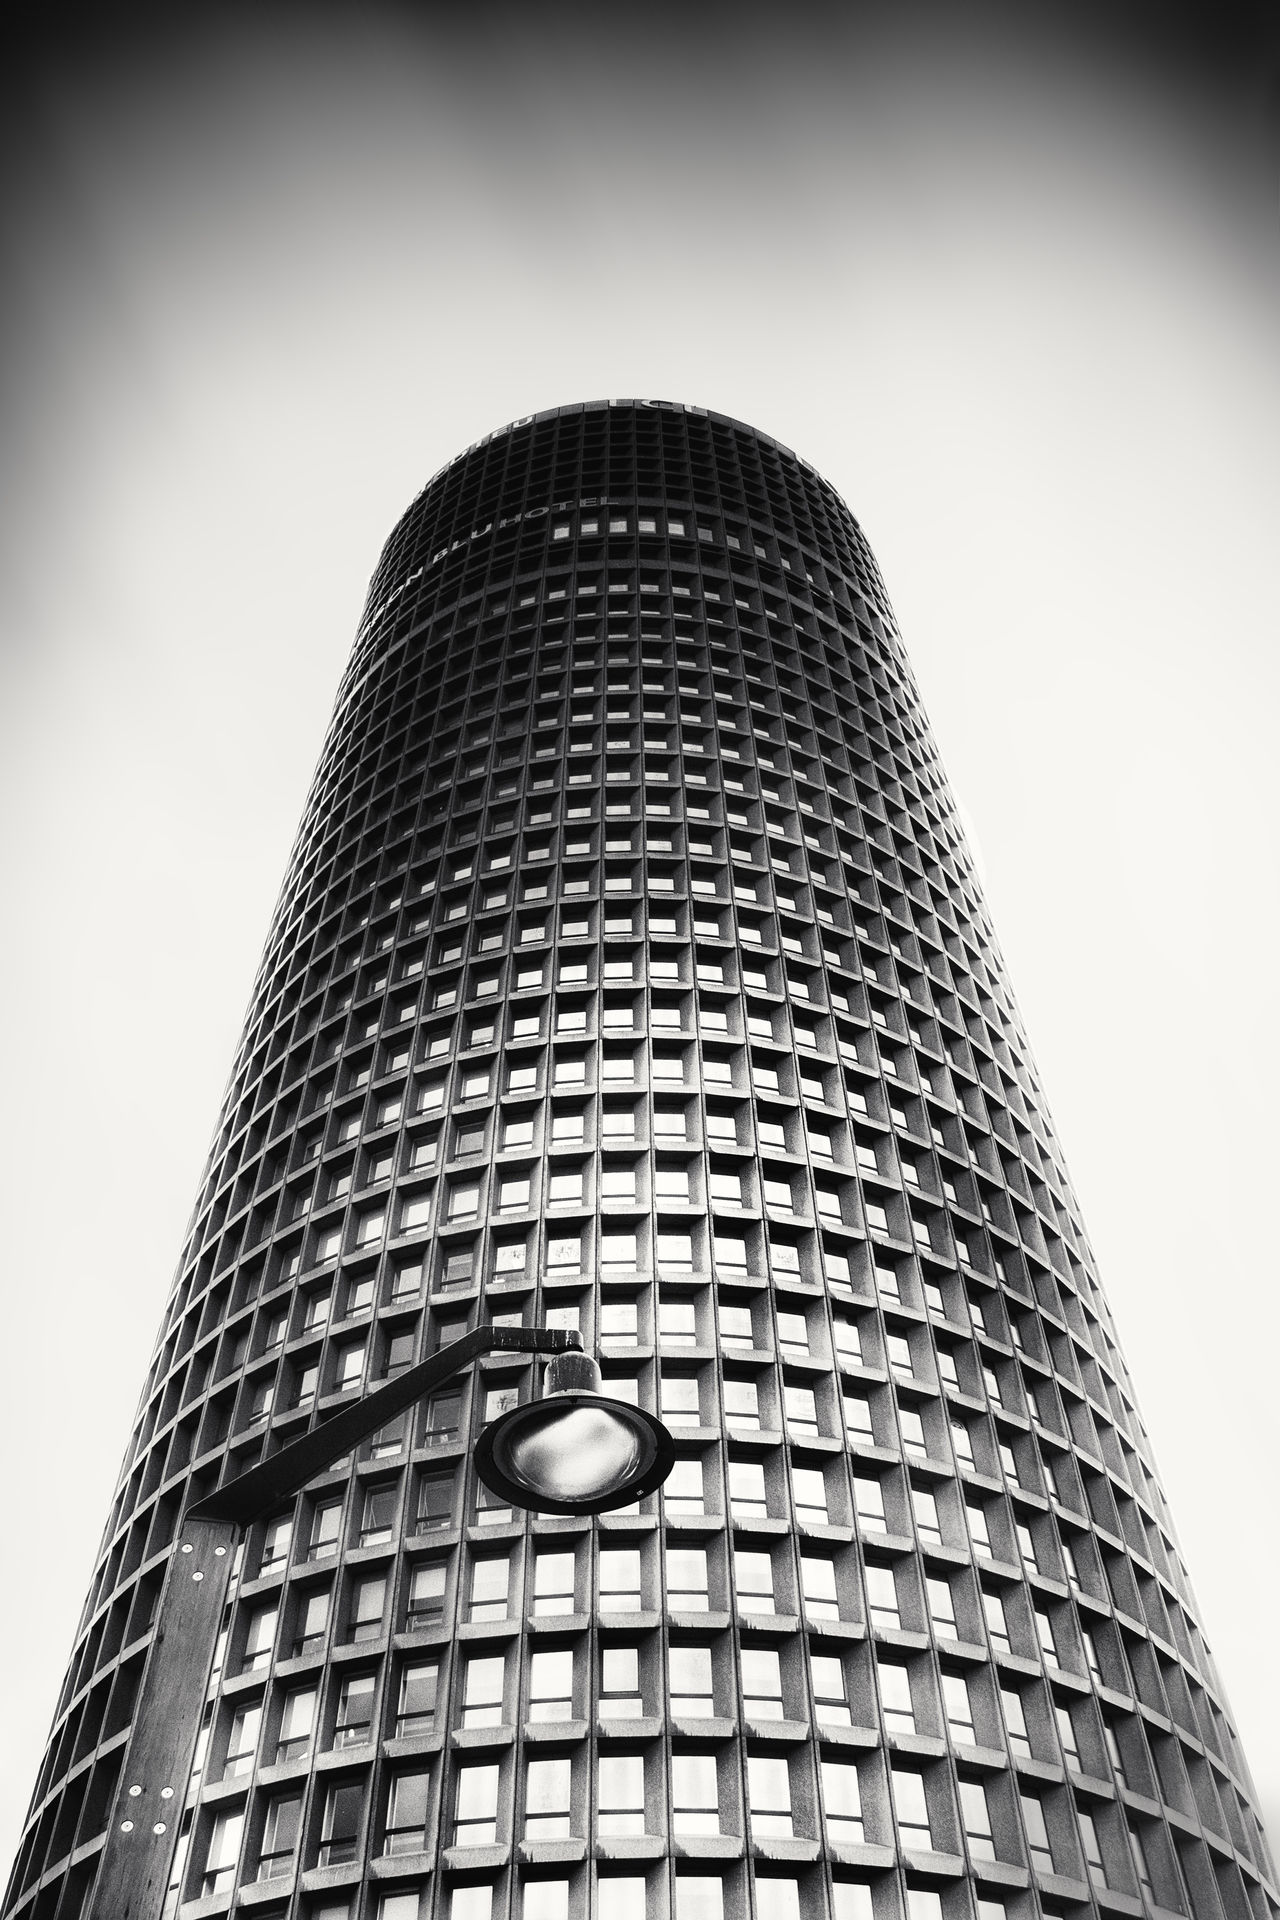 Architecture Low Angle View Architecture Modern No People Built Structure City Sky Futuristic Long Exposure Part Dieu DistrictCity Life Building Exterior City Lyon France Welcome To Black The Architect - 2017 EyeEm Awards The Architect - 2017 EyeEm Awards